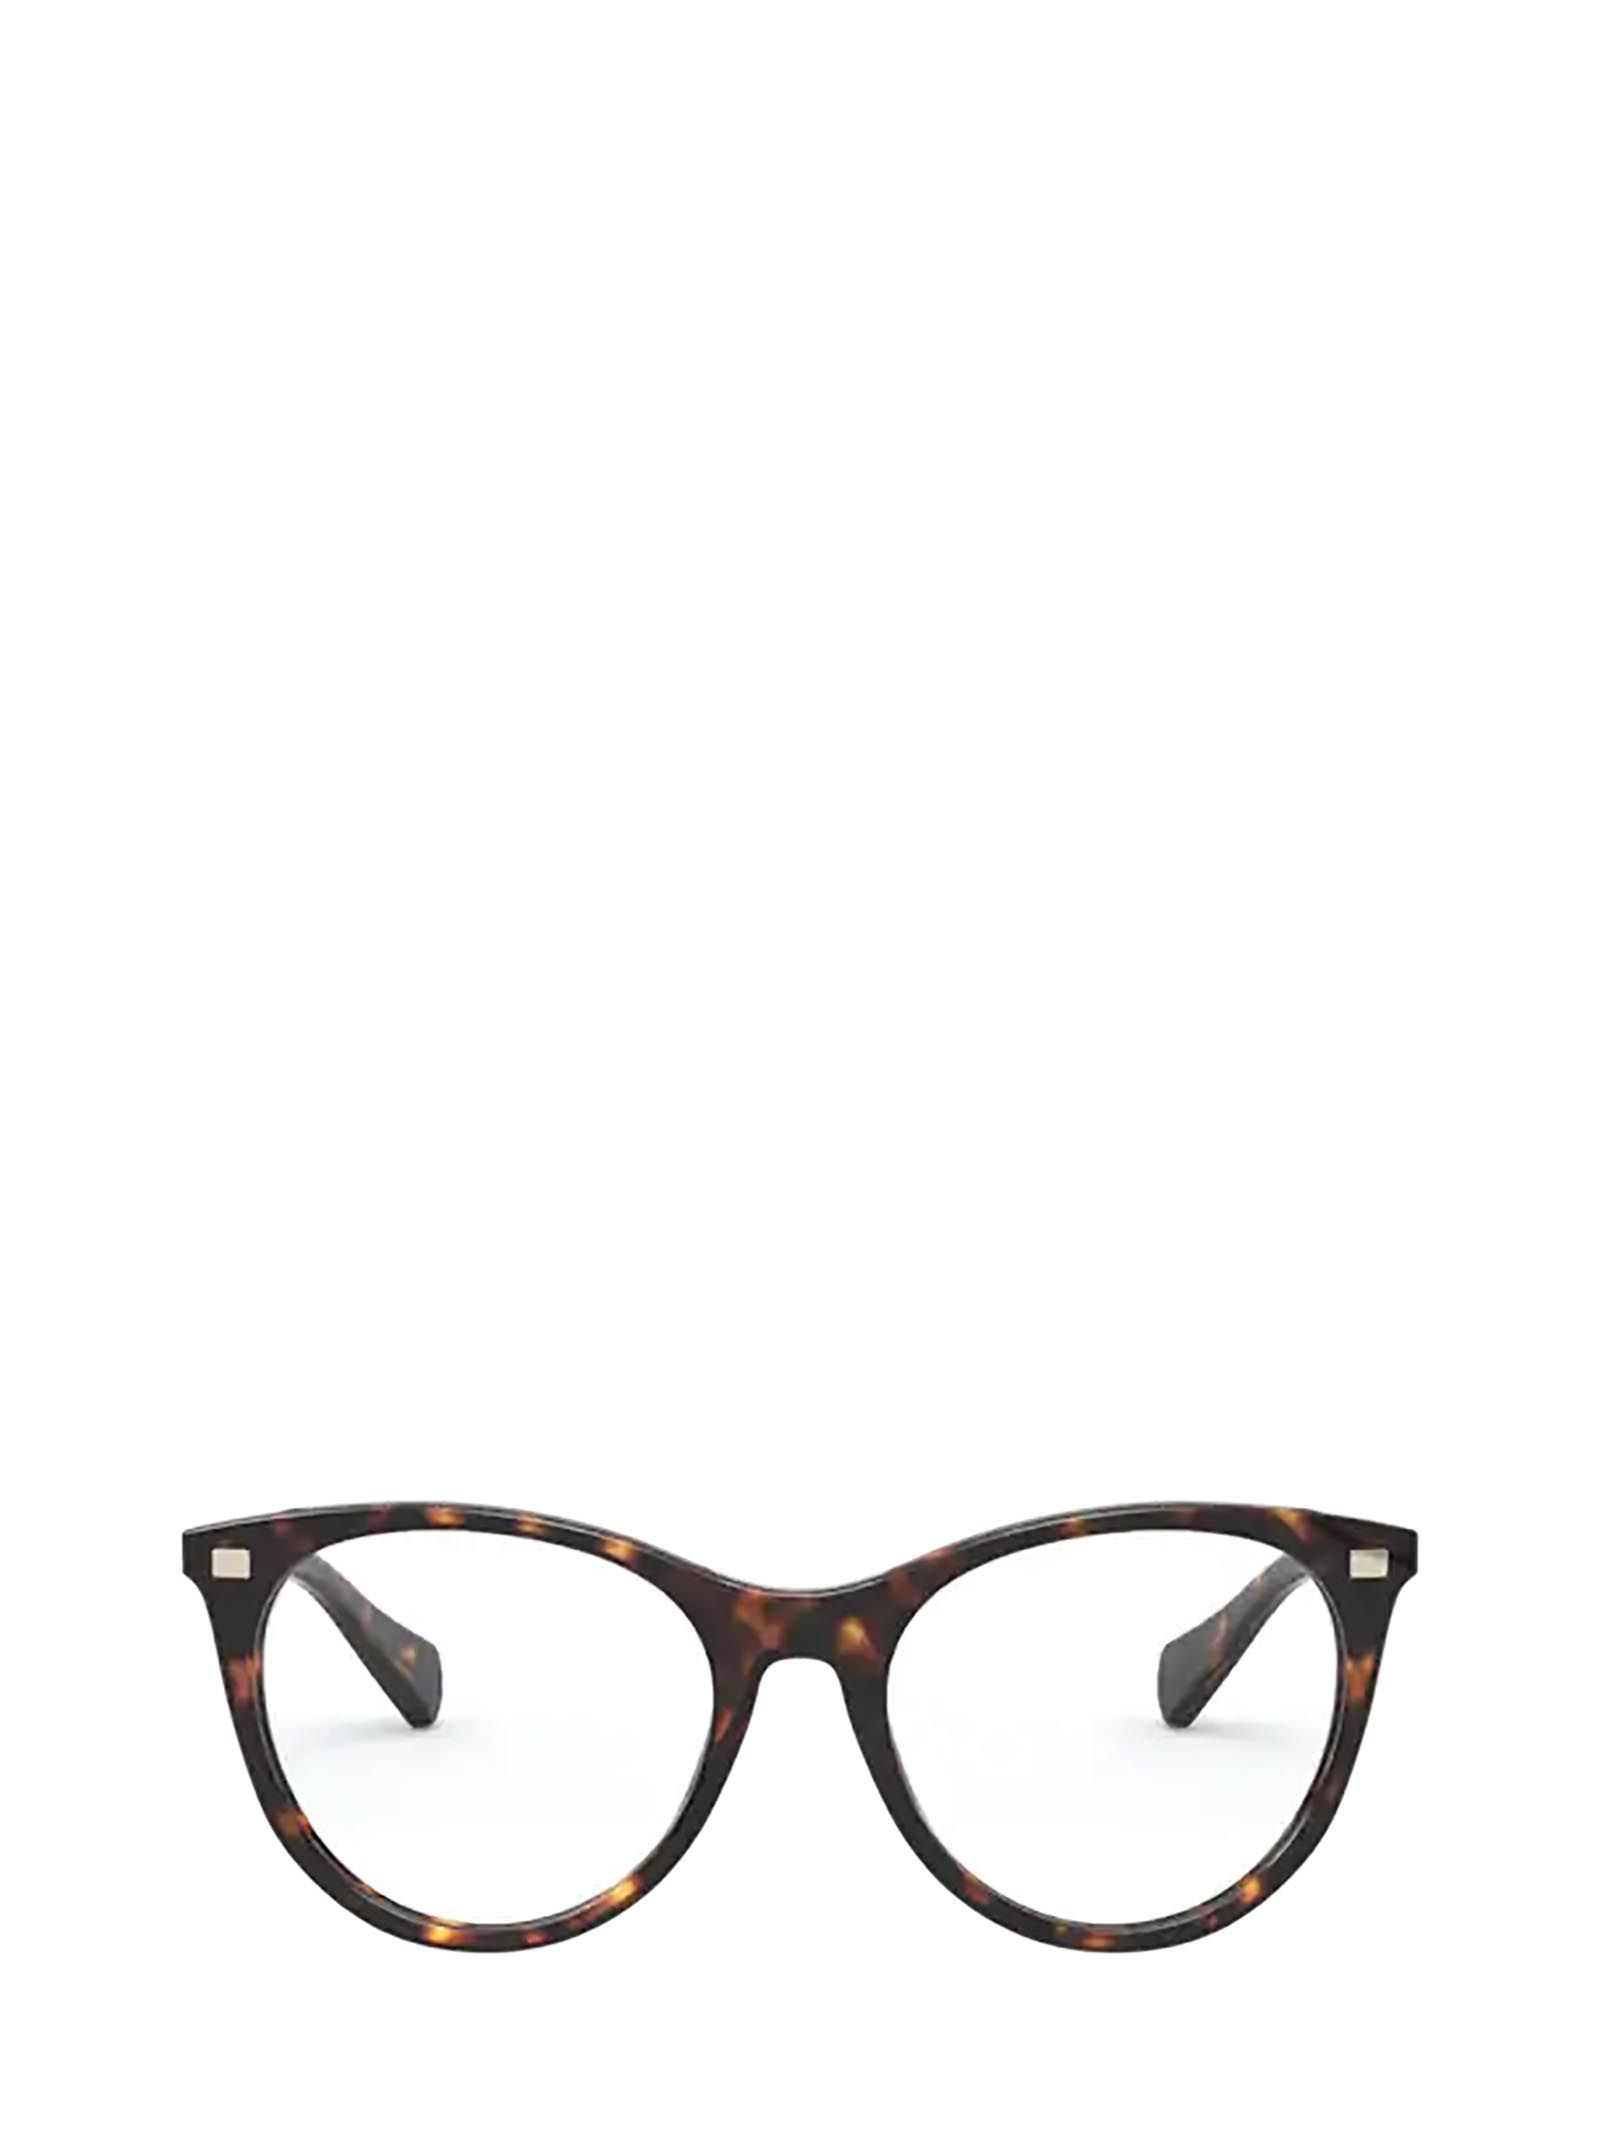 Ralph Lauren RALPH LAUREN WOMEN'S MULTICOLOR METAL GLASSES